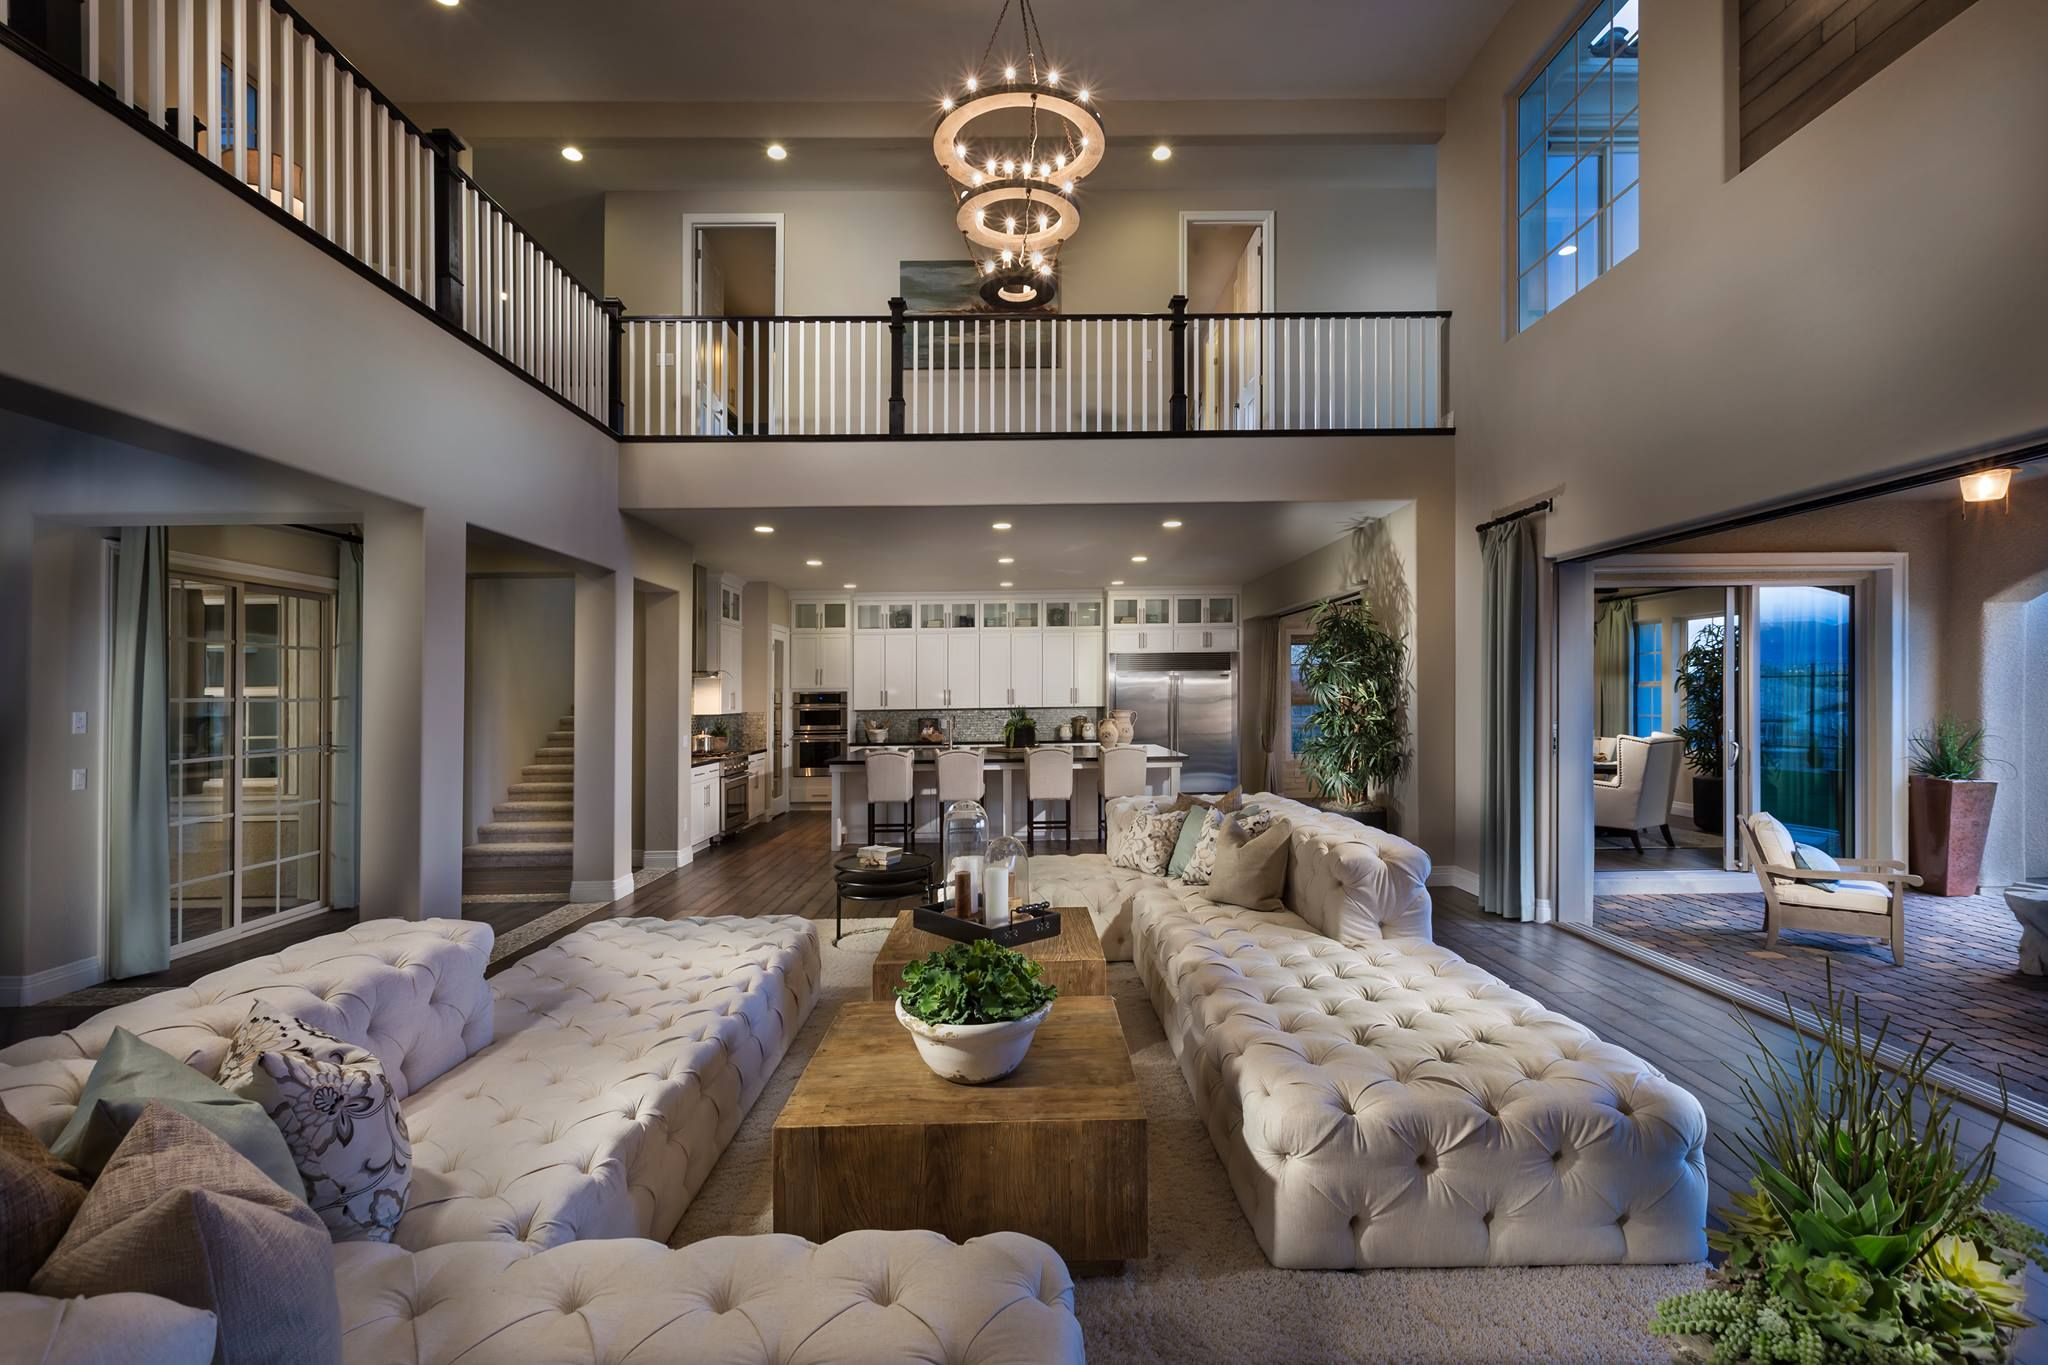 How Would You React If You Had An Open Floorplan Like This One In Las Vegas New House Plans Luxury Homes Dream Houses House Plans